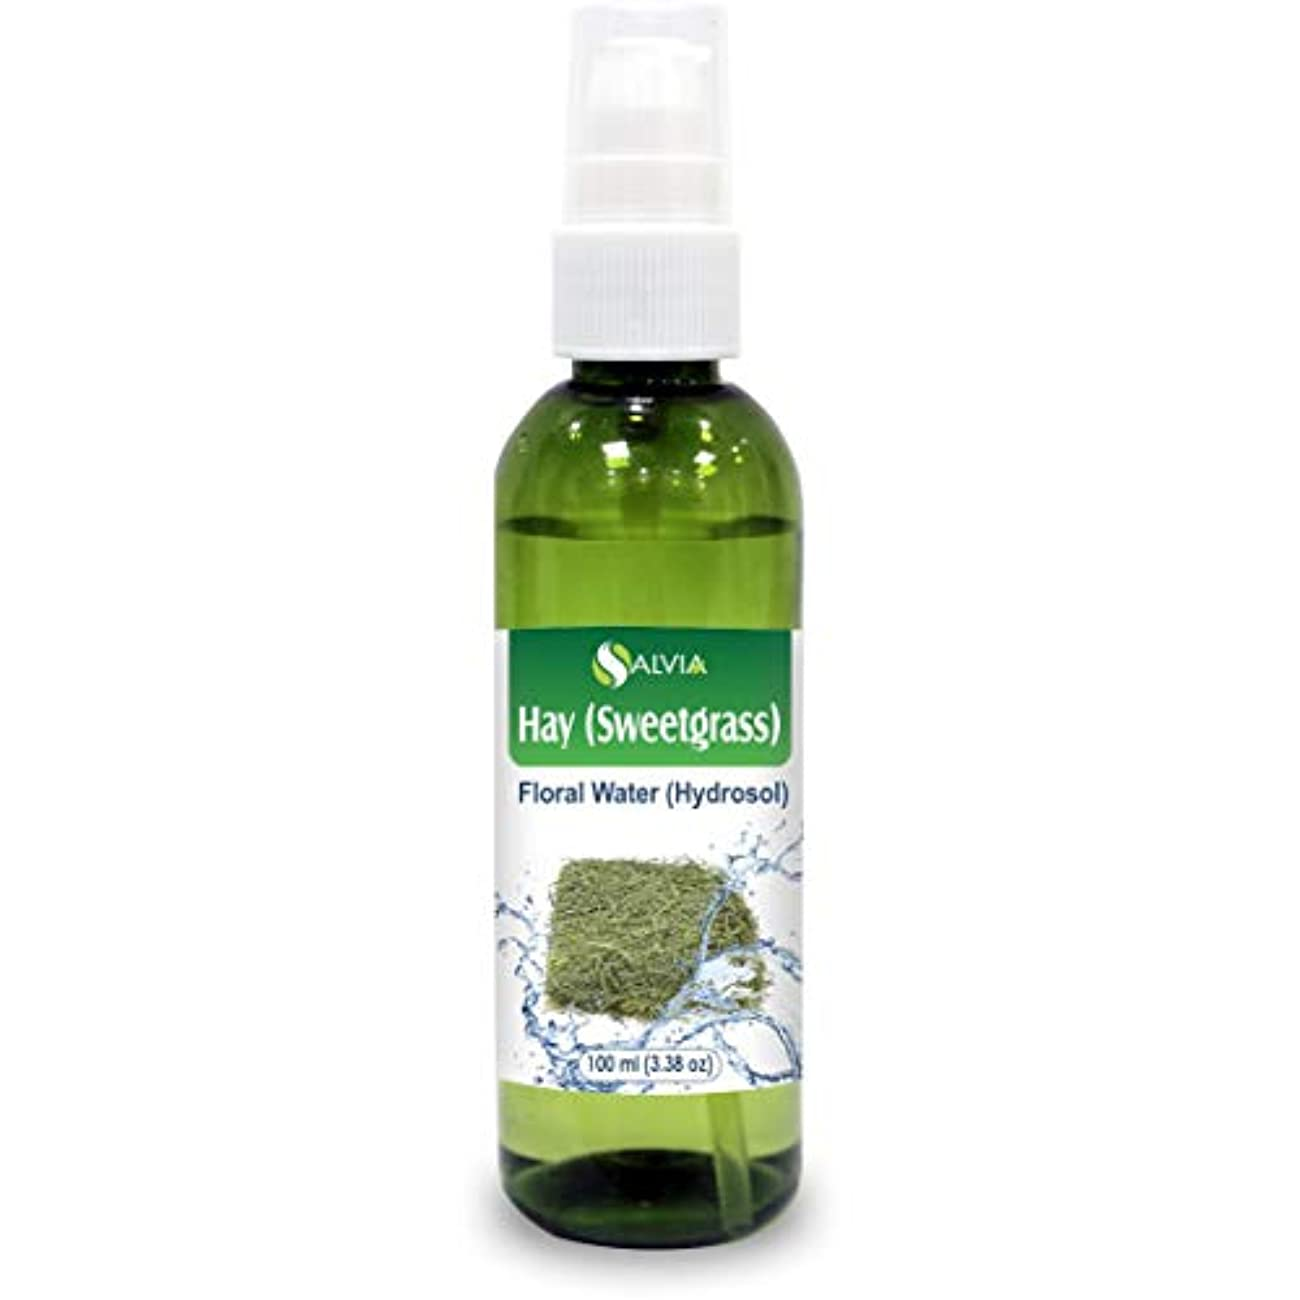 Hay (Sweetgrass) Floral Water 100ml (Hydrosol) 100% Pure And Natural